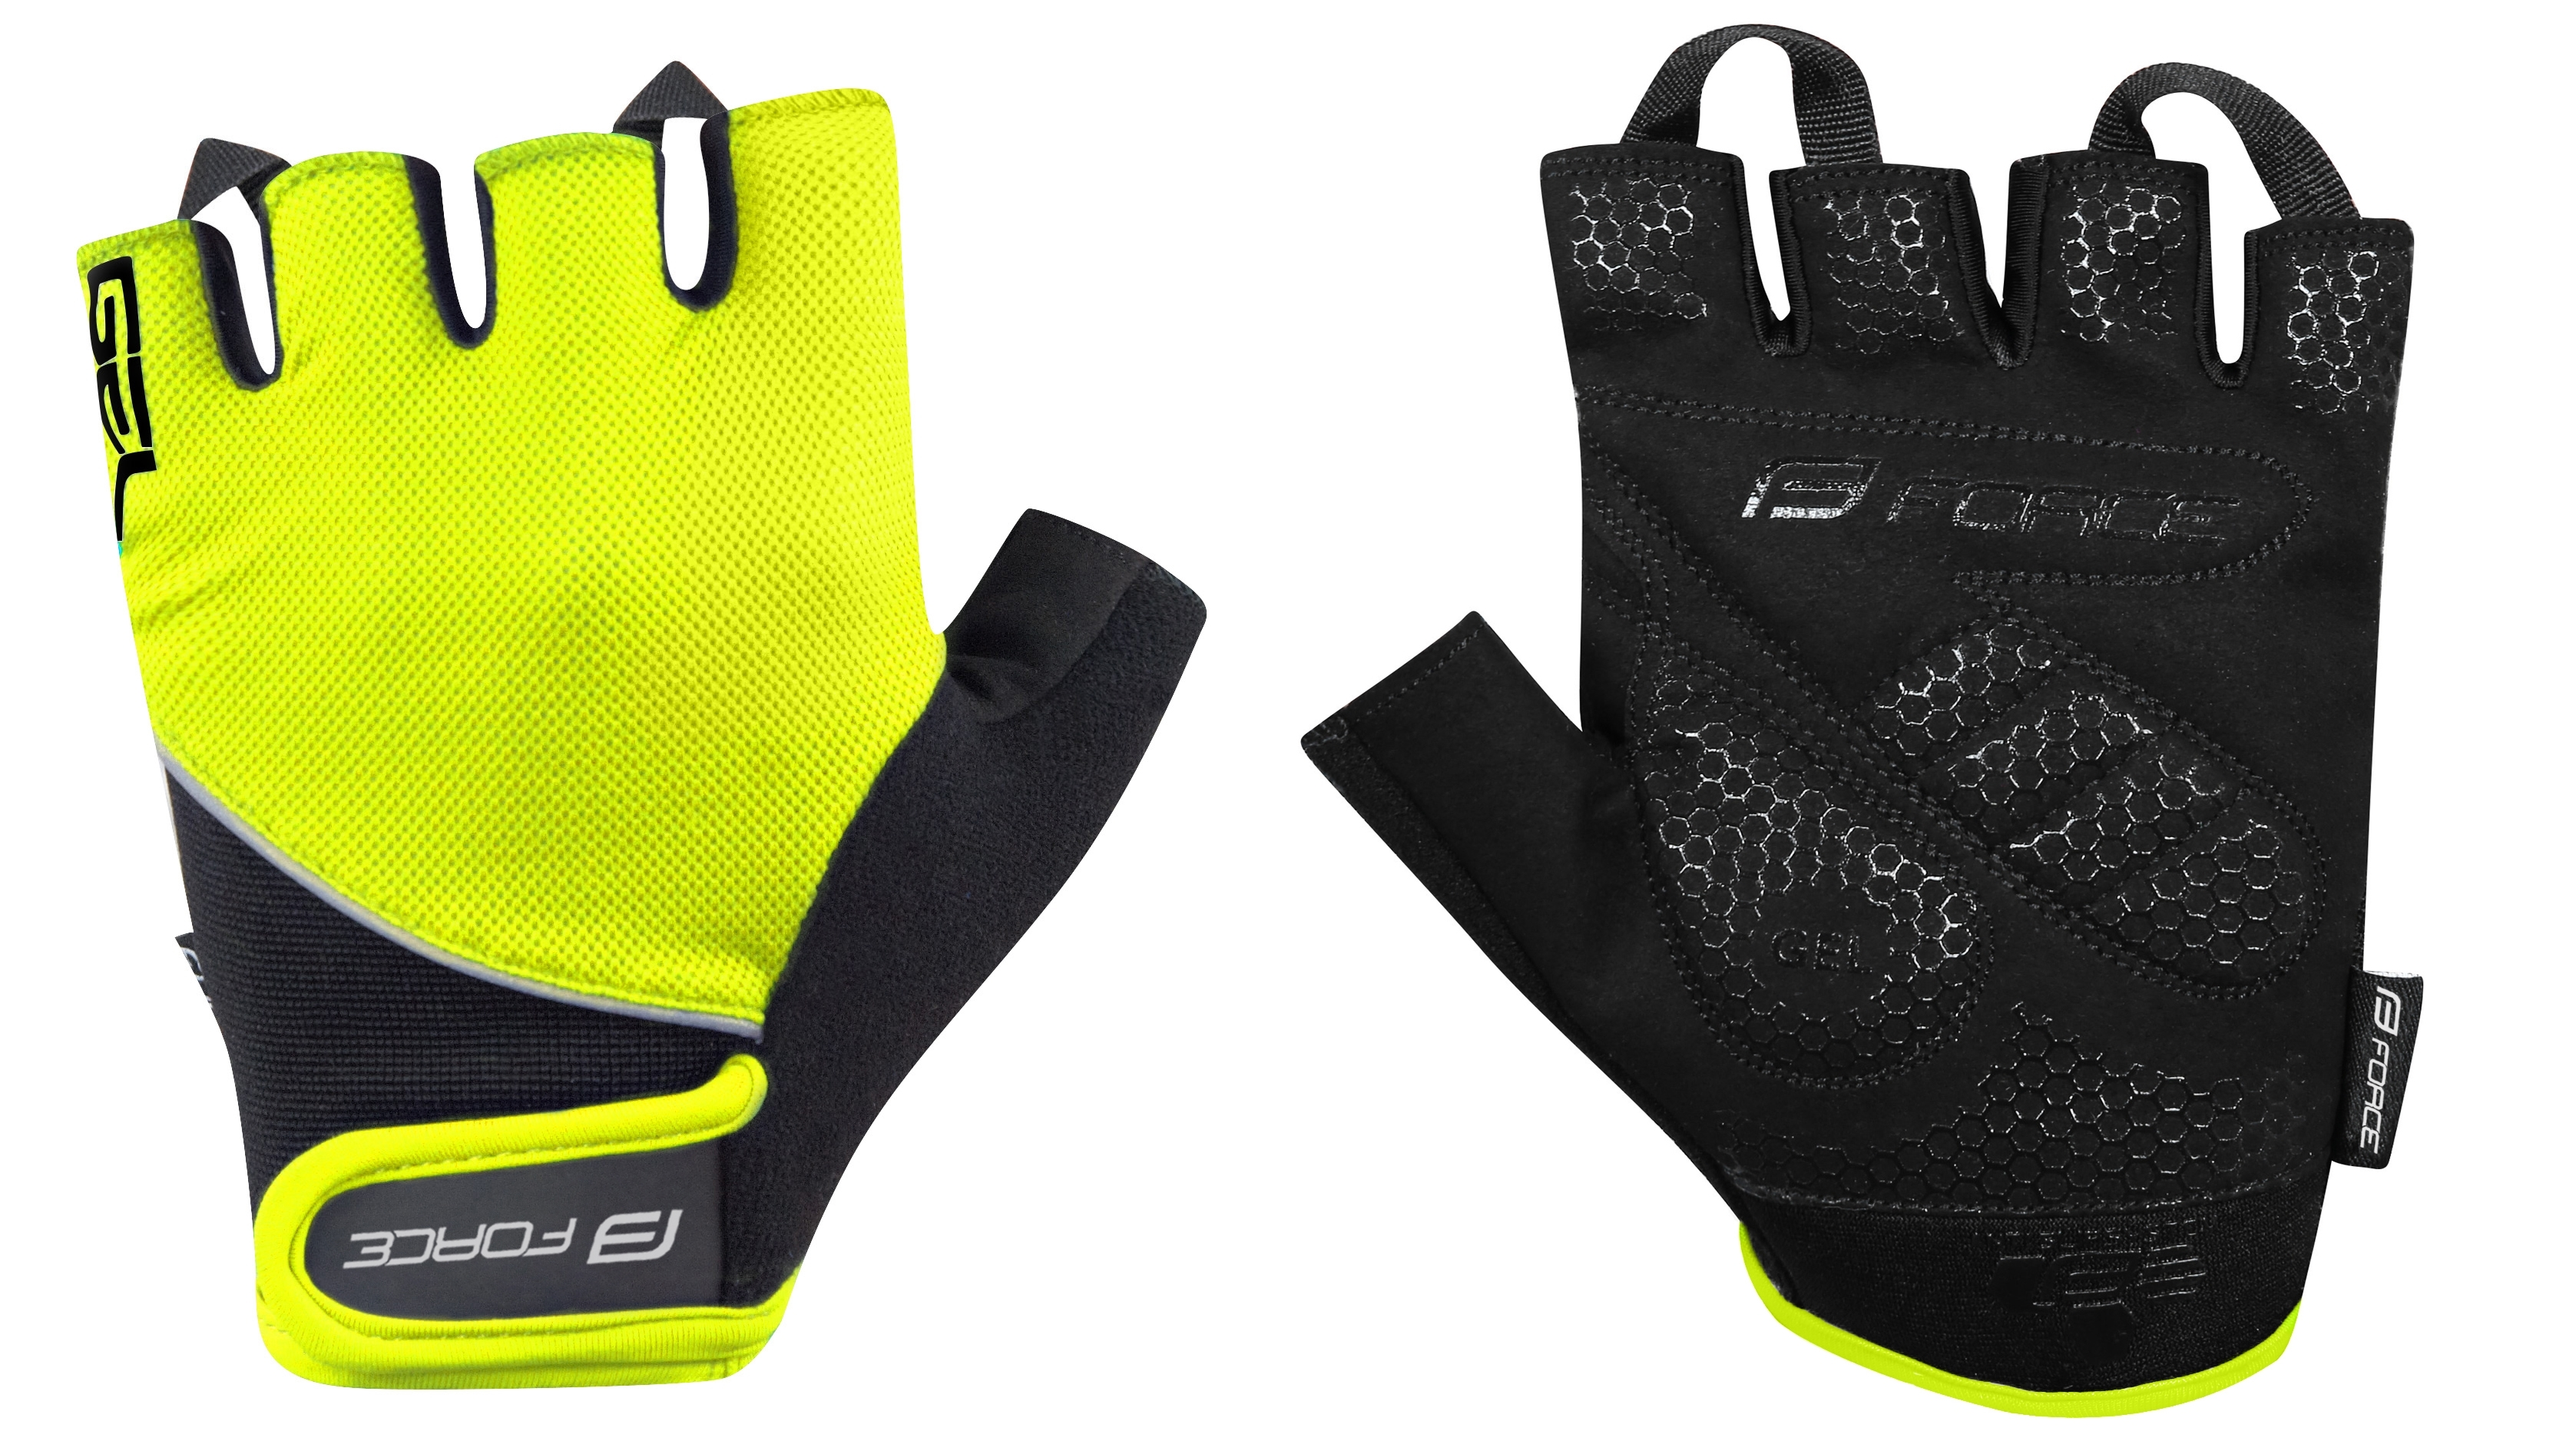 rukavice FORCE GEL 17, fluo L